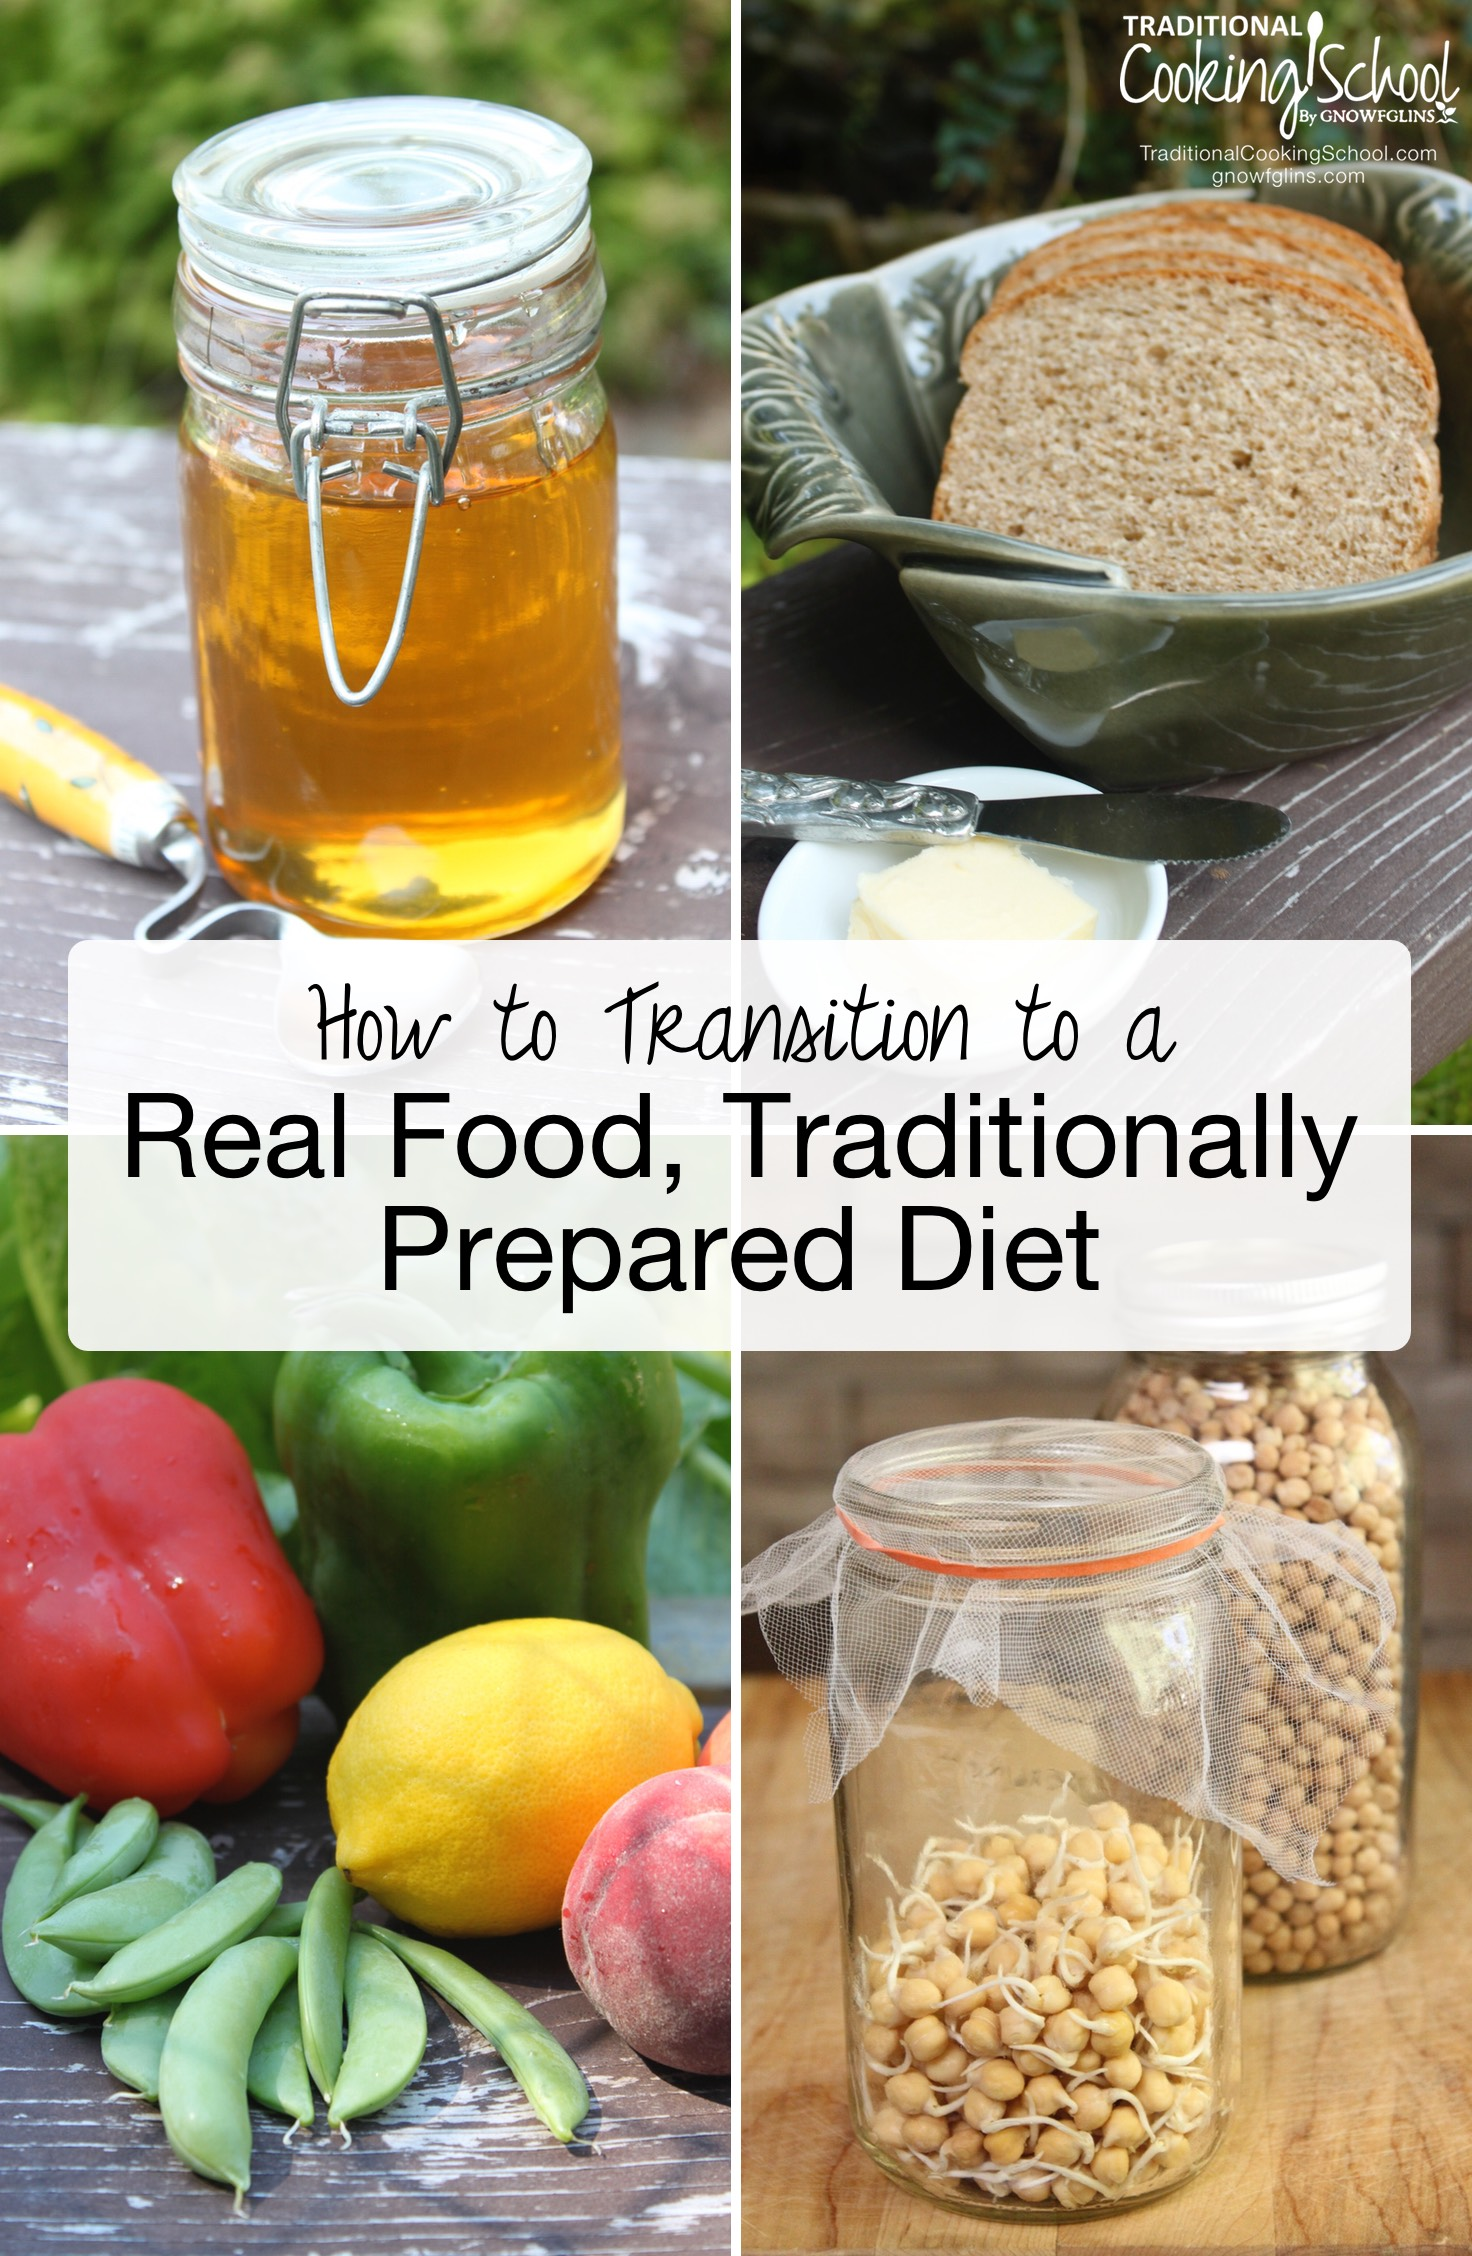 How To Transition To A Real Food, Traditionally Prepared Diet   You've decided to change your diet to traditionally prepared foods. Where do you begin? You need a plan -- and here are 10 steps that teach you how to transition to a Real Food traditional diet.   TraditionalCookingSchool.com